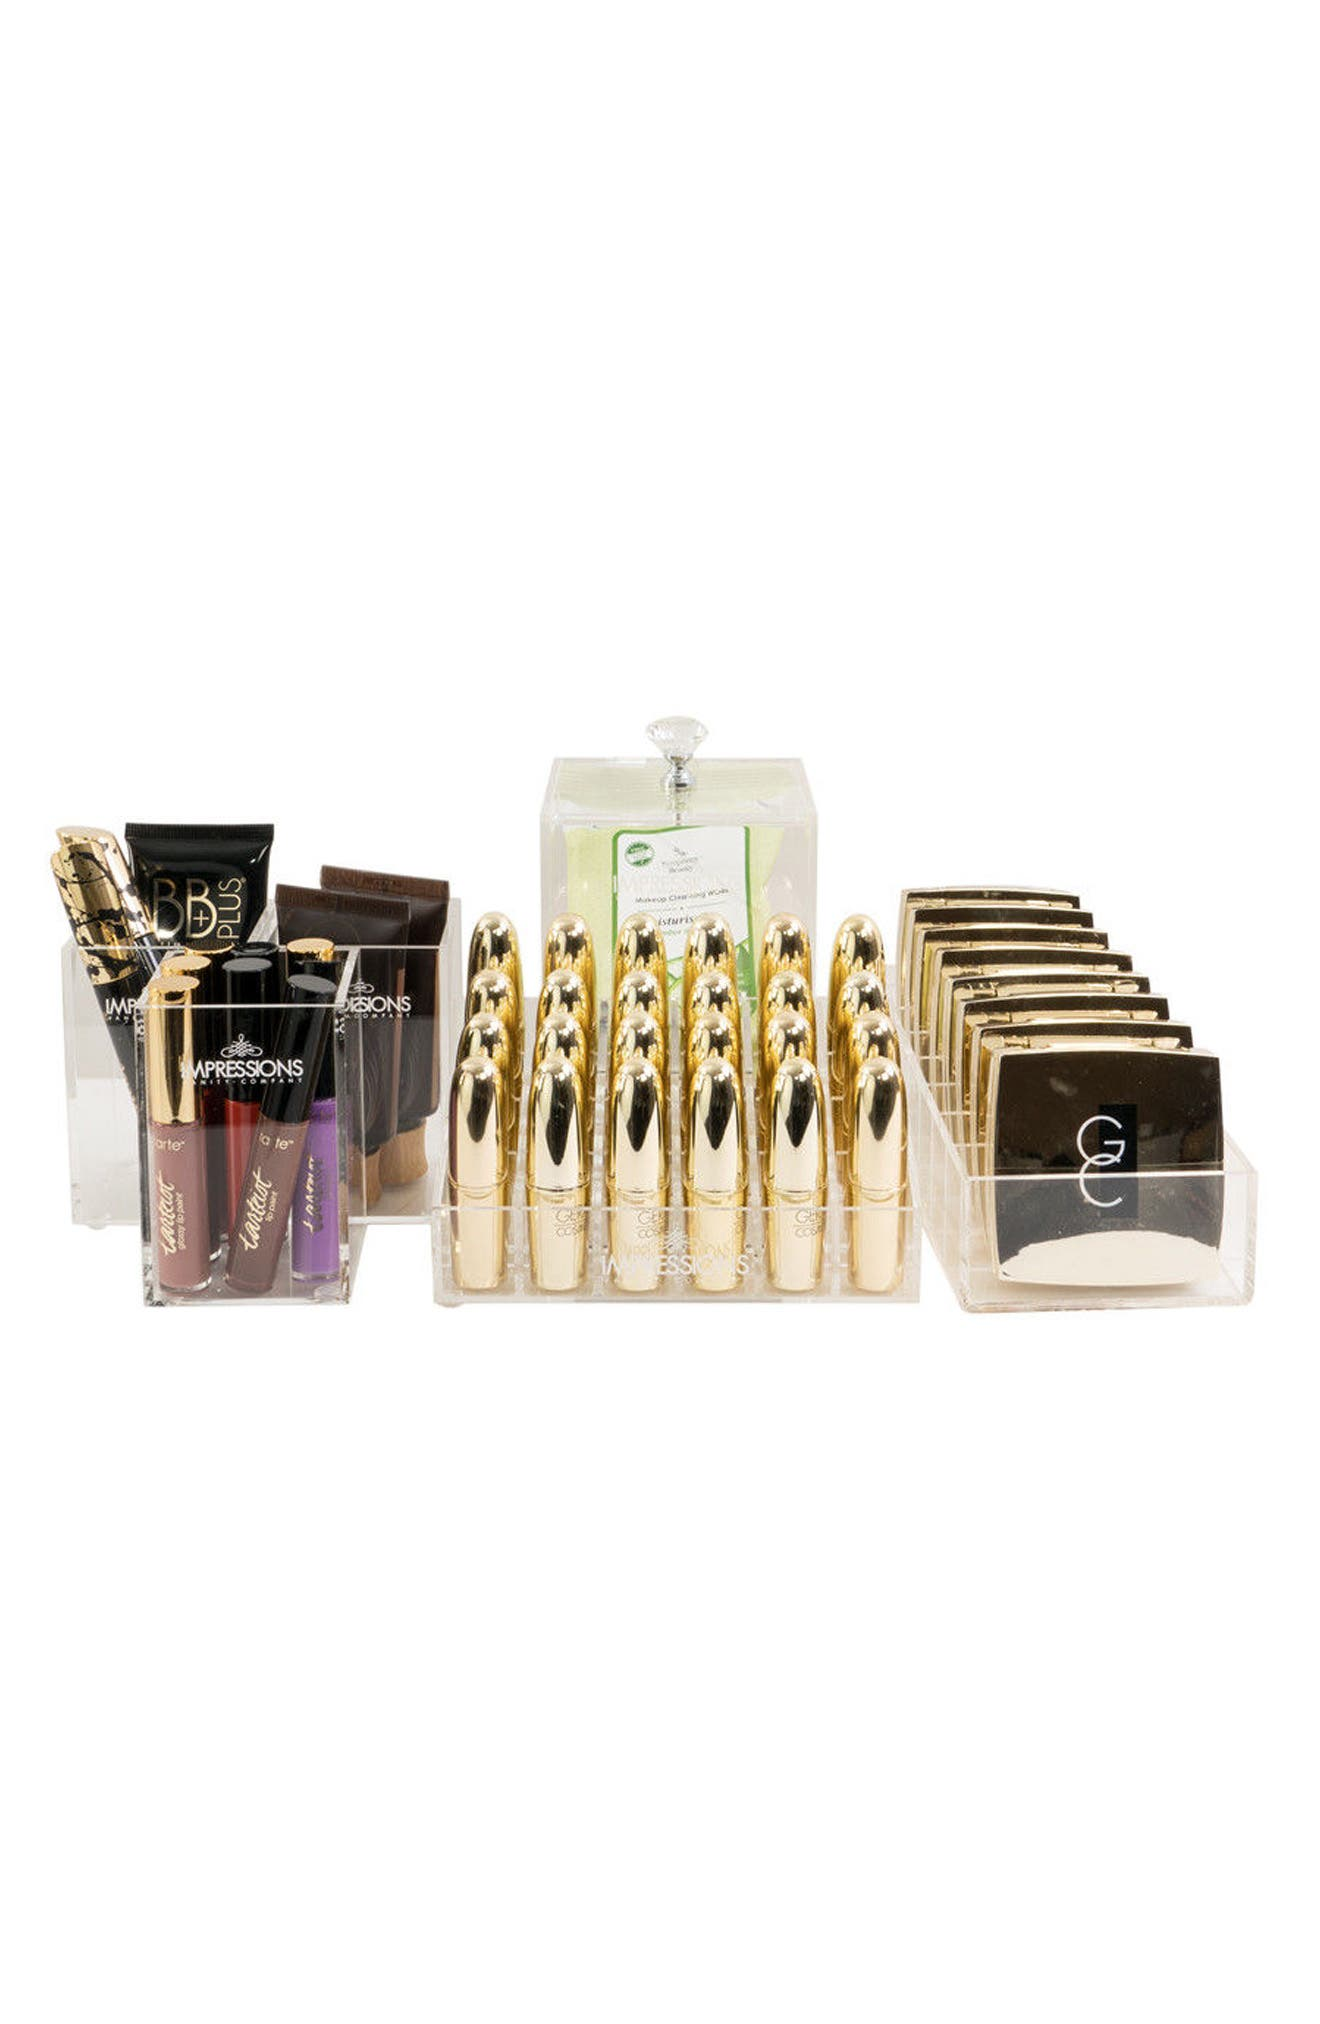 Impressions Vanity Co. Diamond Collection 6-Piece Acrylic Organizer Set